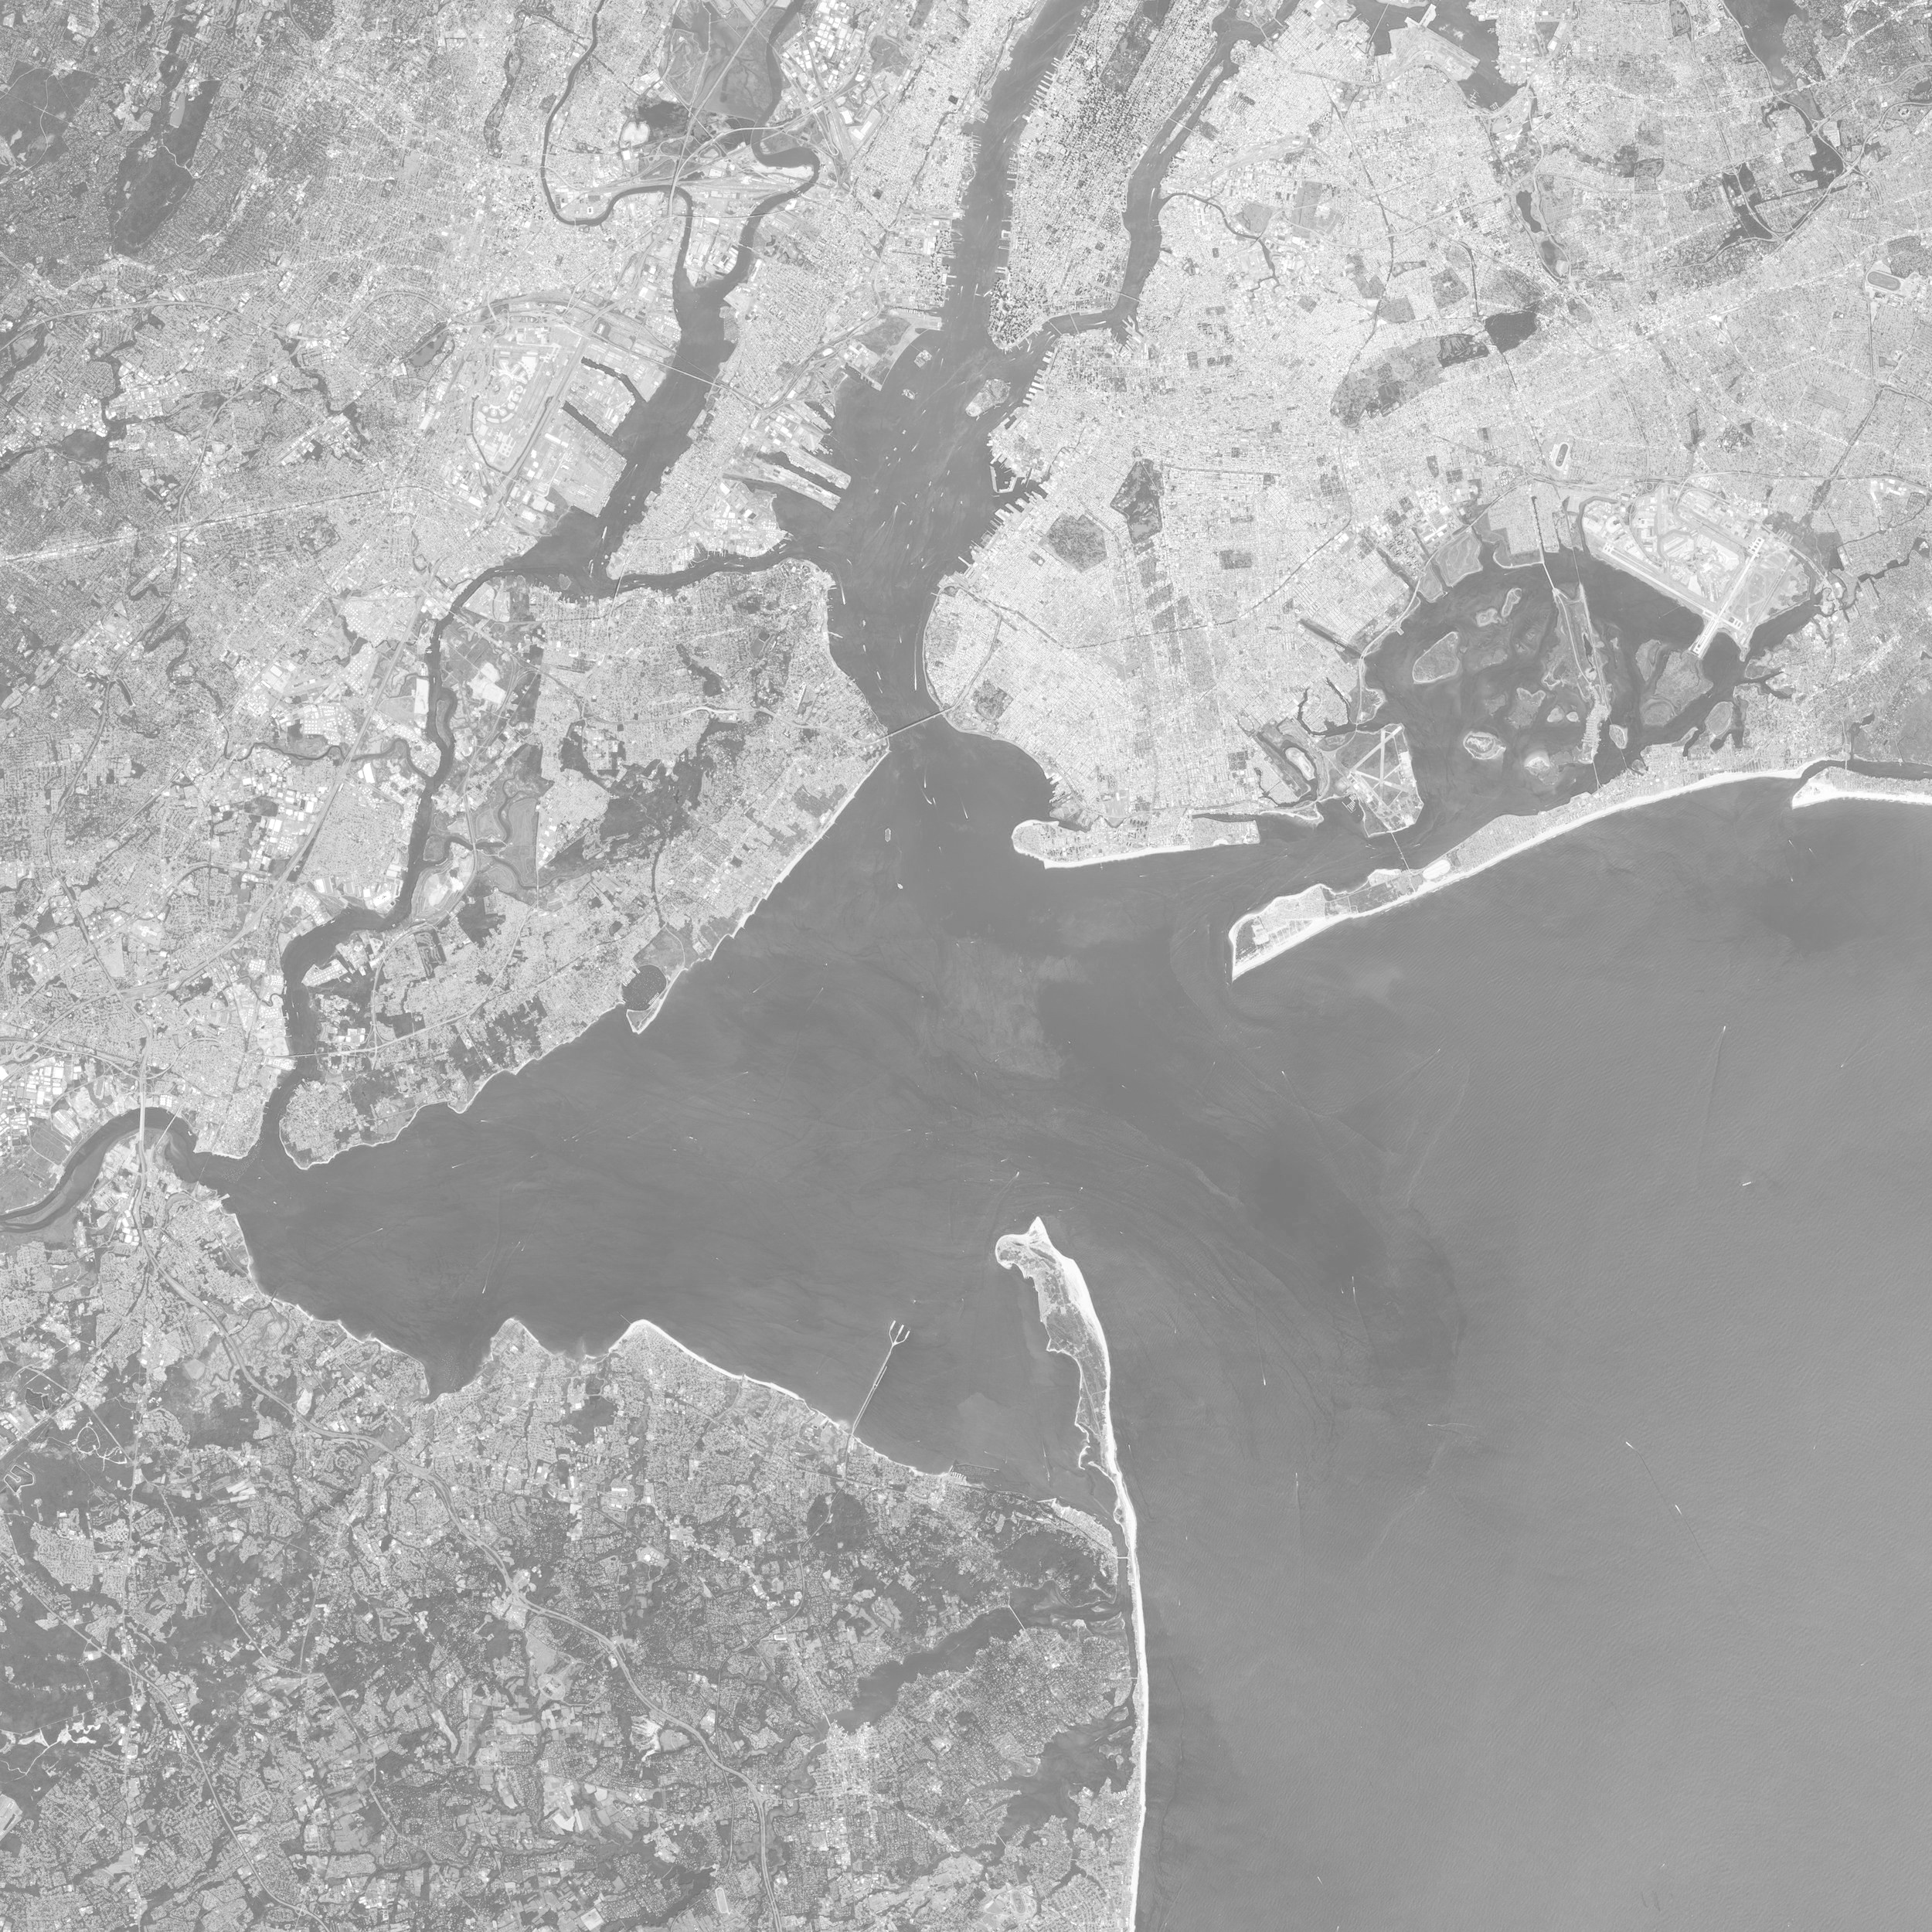 It's not easy being a horseshoe crab around New York Harbor! -